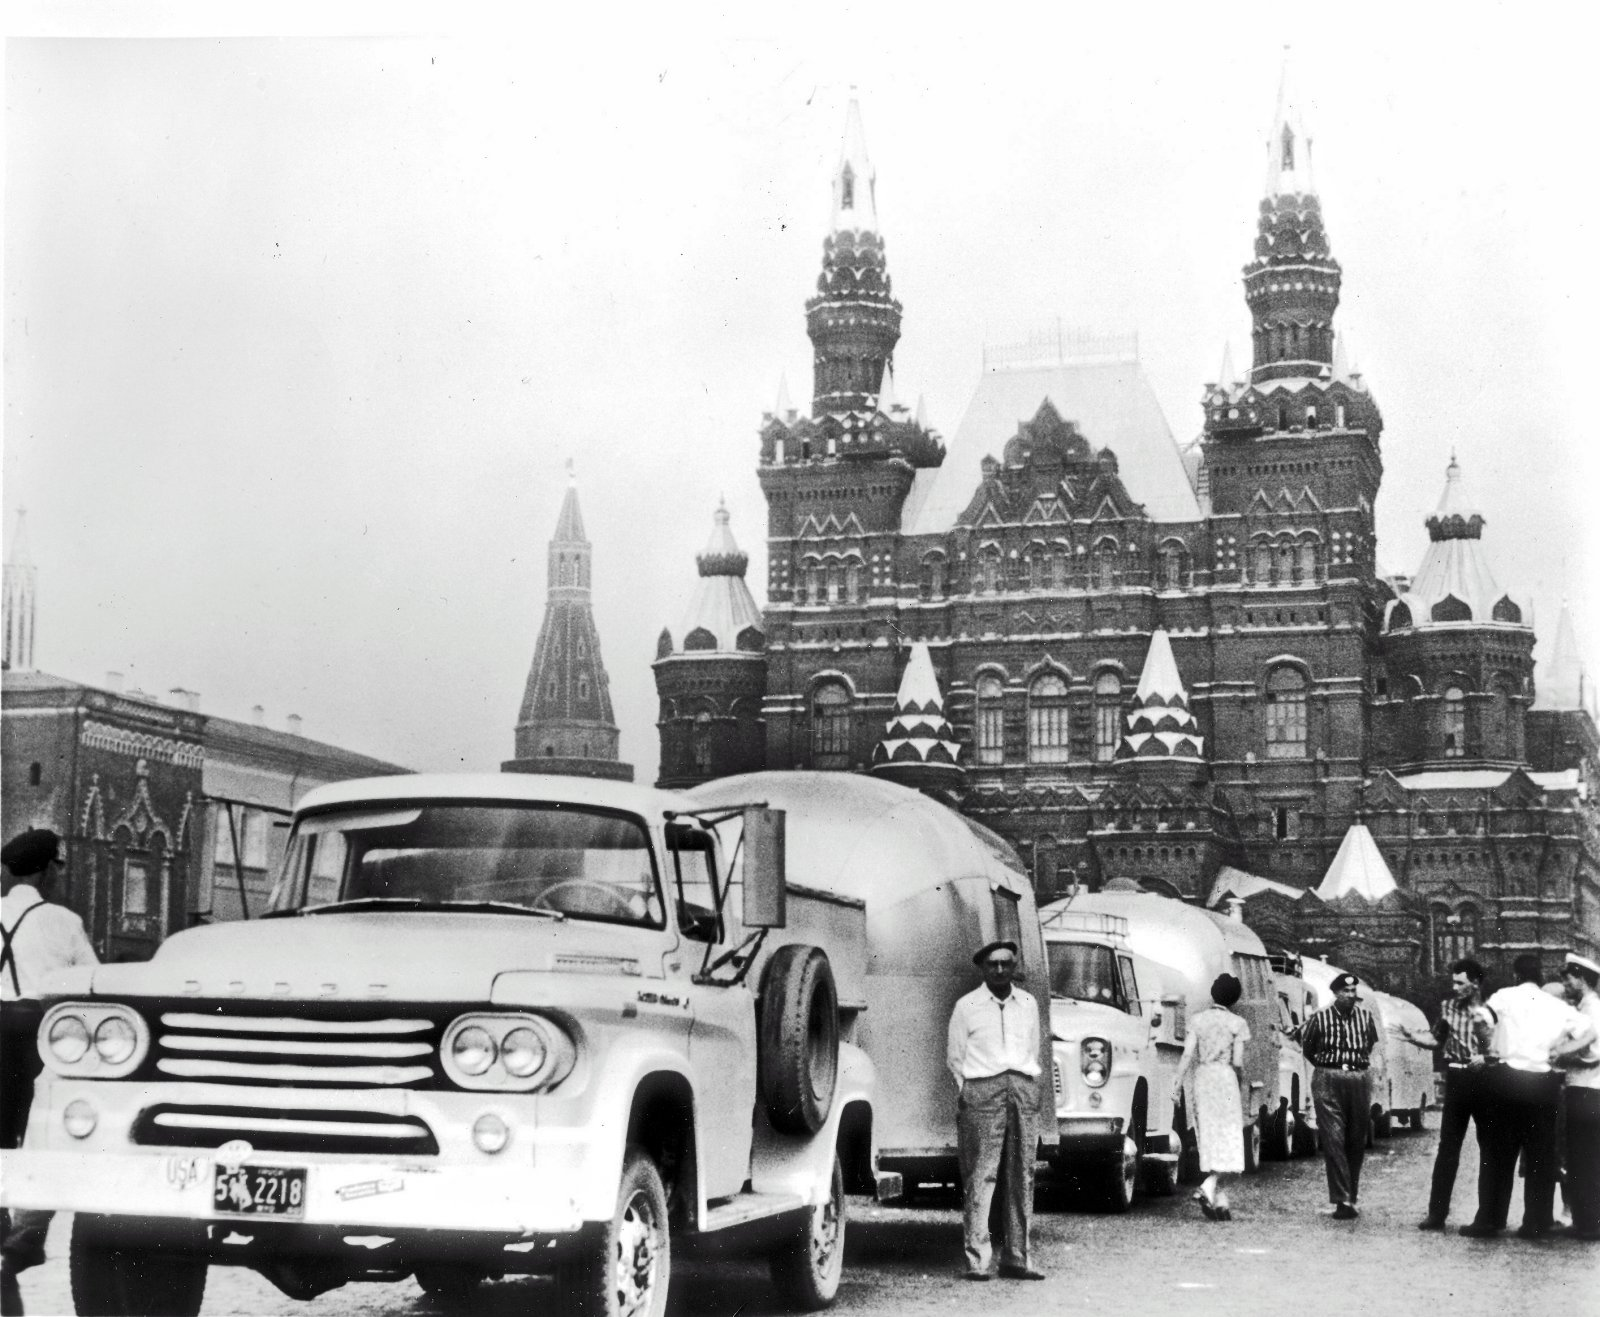 Click image for larger version  Name:scan0008 african caravanners in moscow.jpg Views:288 Size:330.3 KB ID:73991